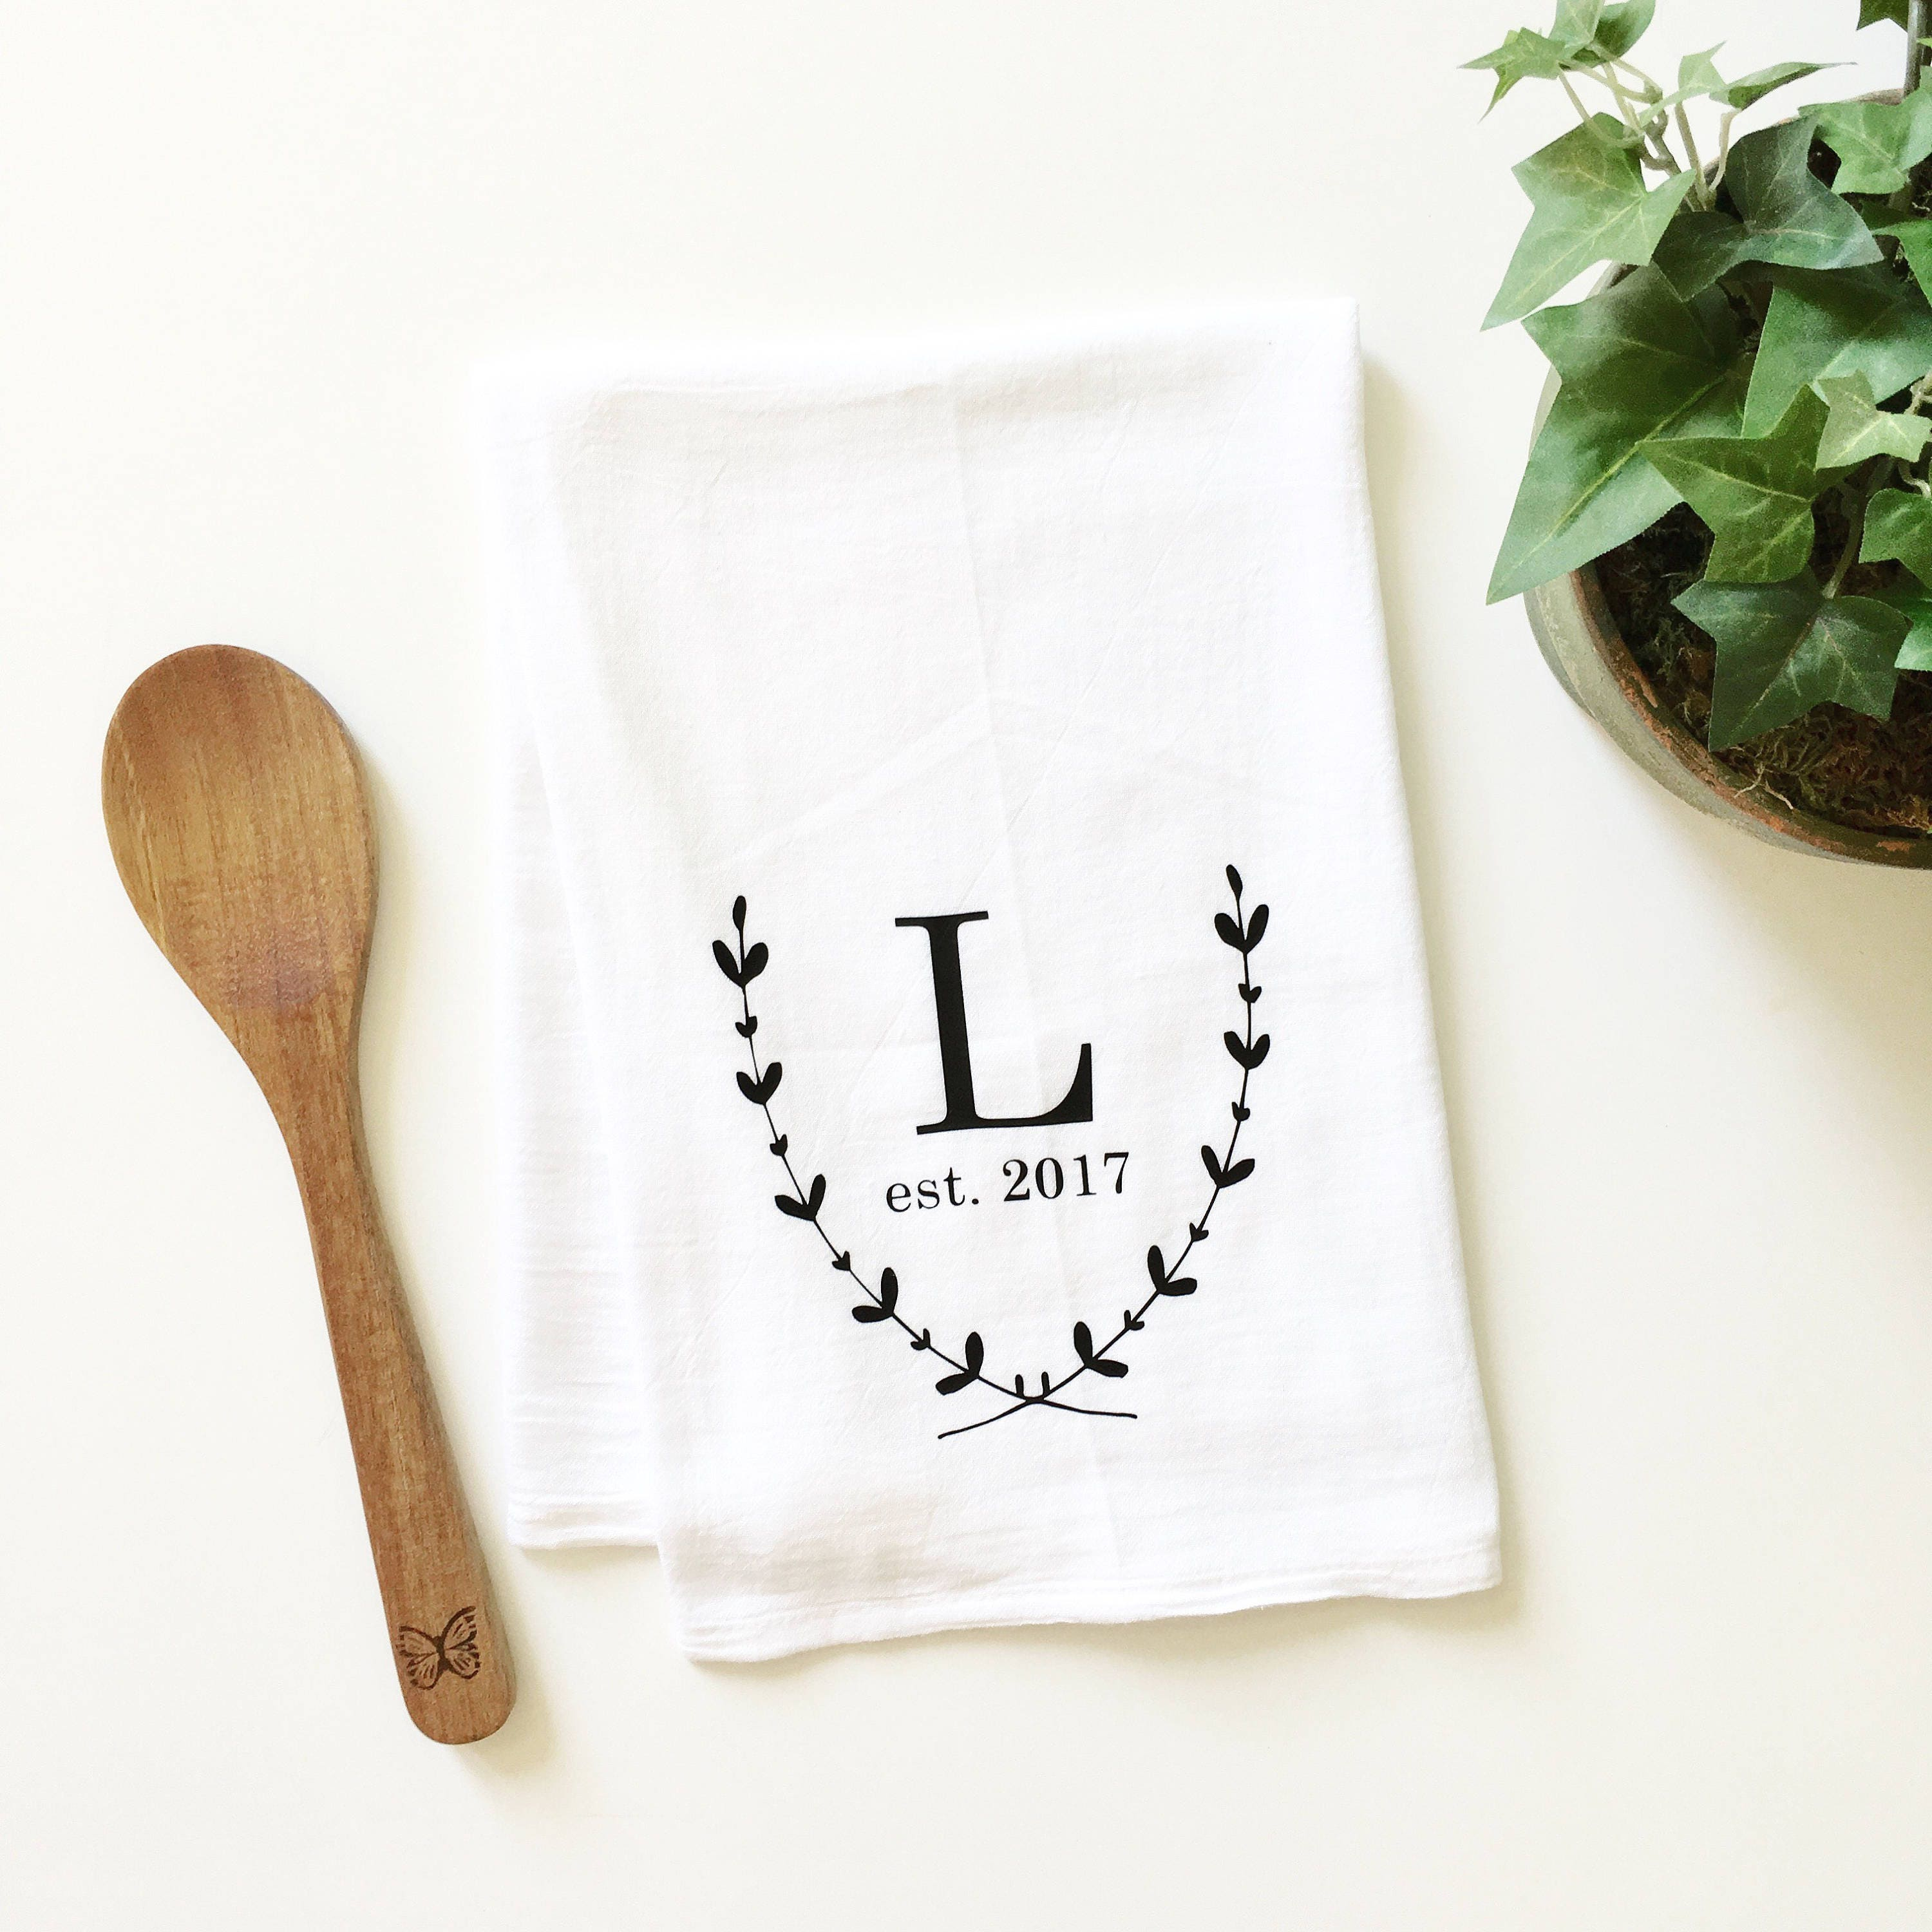 Embroidered Towels For Wedding Gift: Monogrammed Tea Towel Personalized Tea Towel Wedding Gift